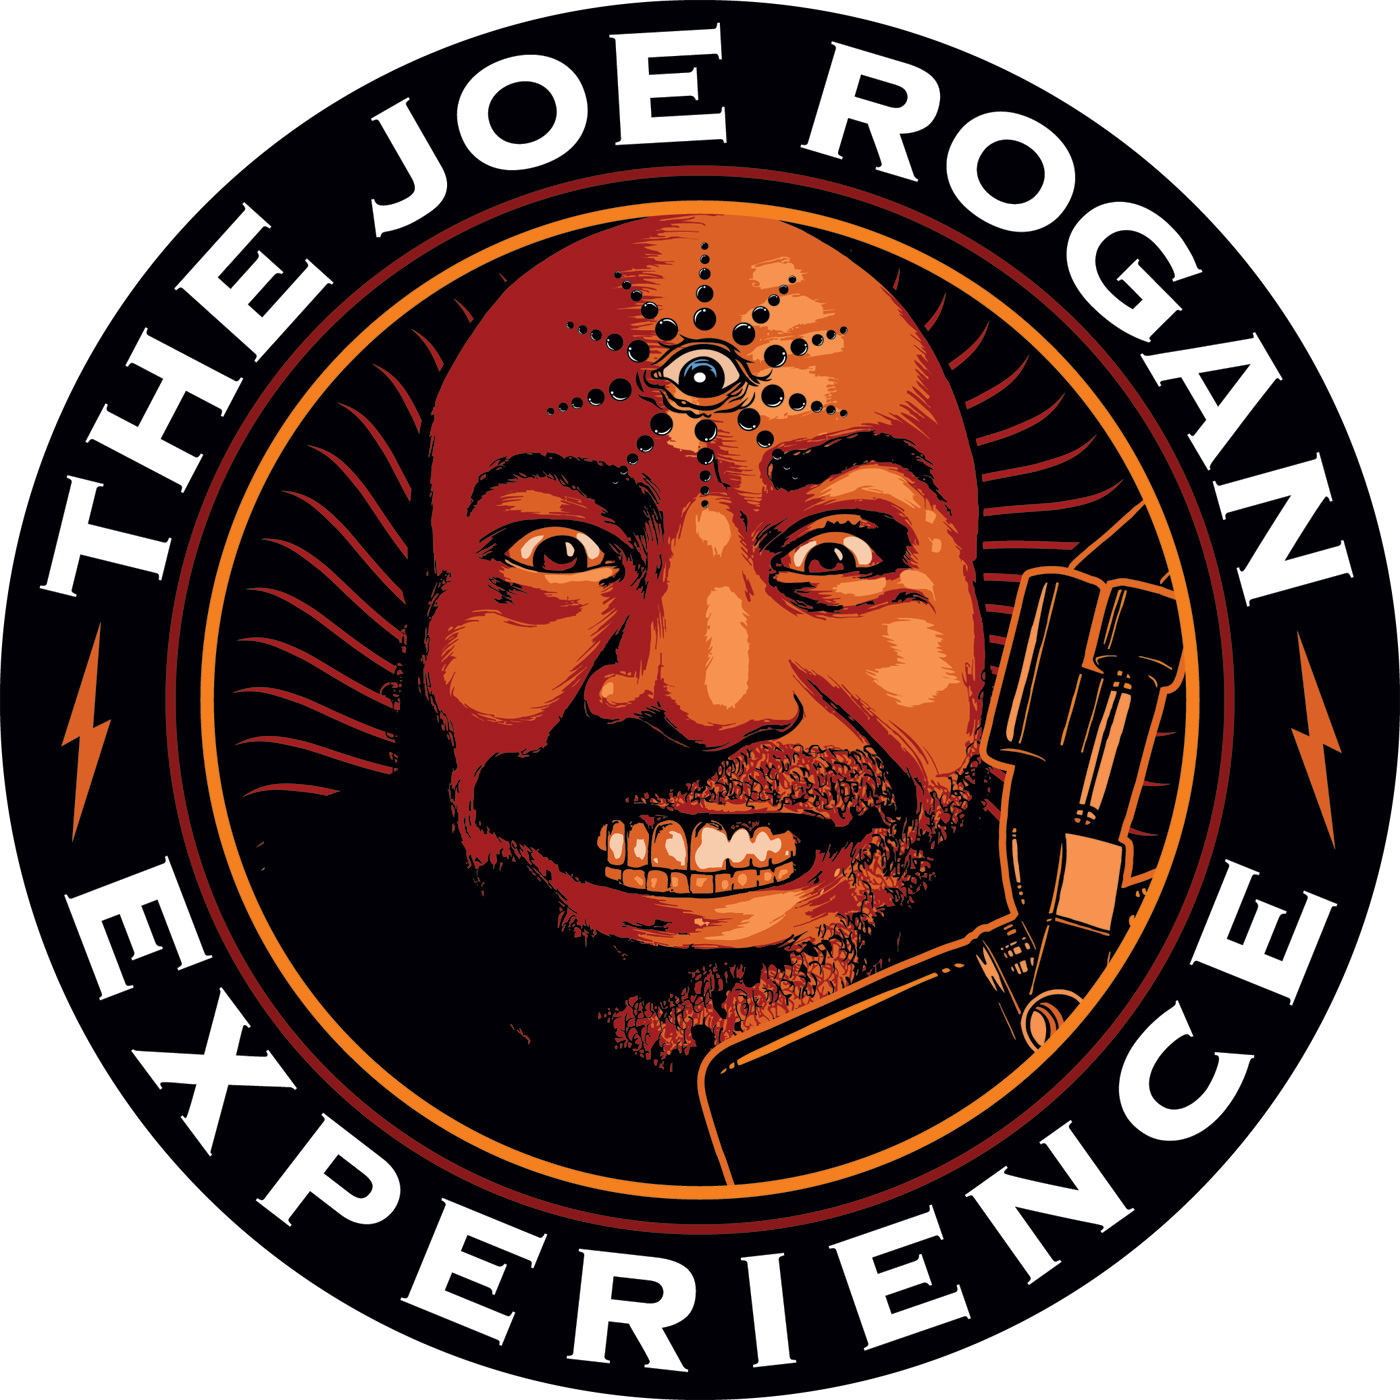 The Joe Rogan Experience PODCAST #83 - Bas Rutten, Brian Redban